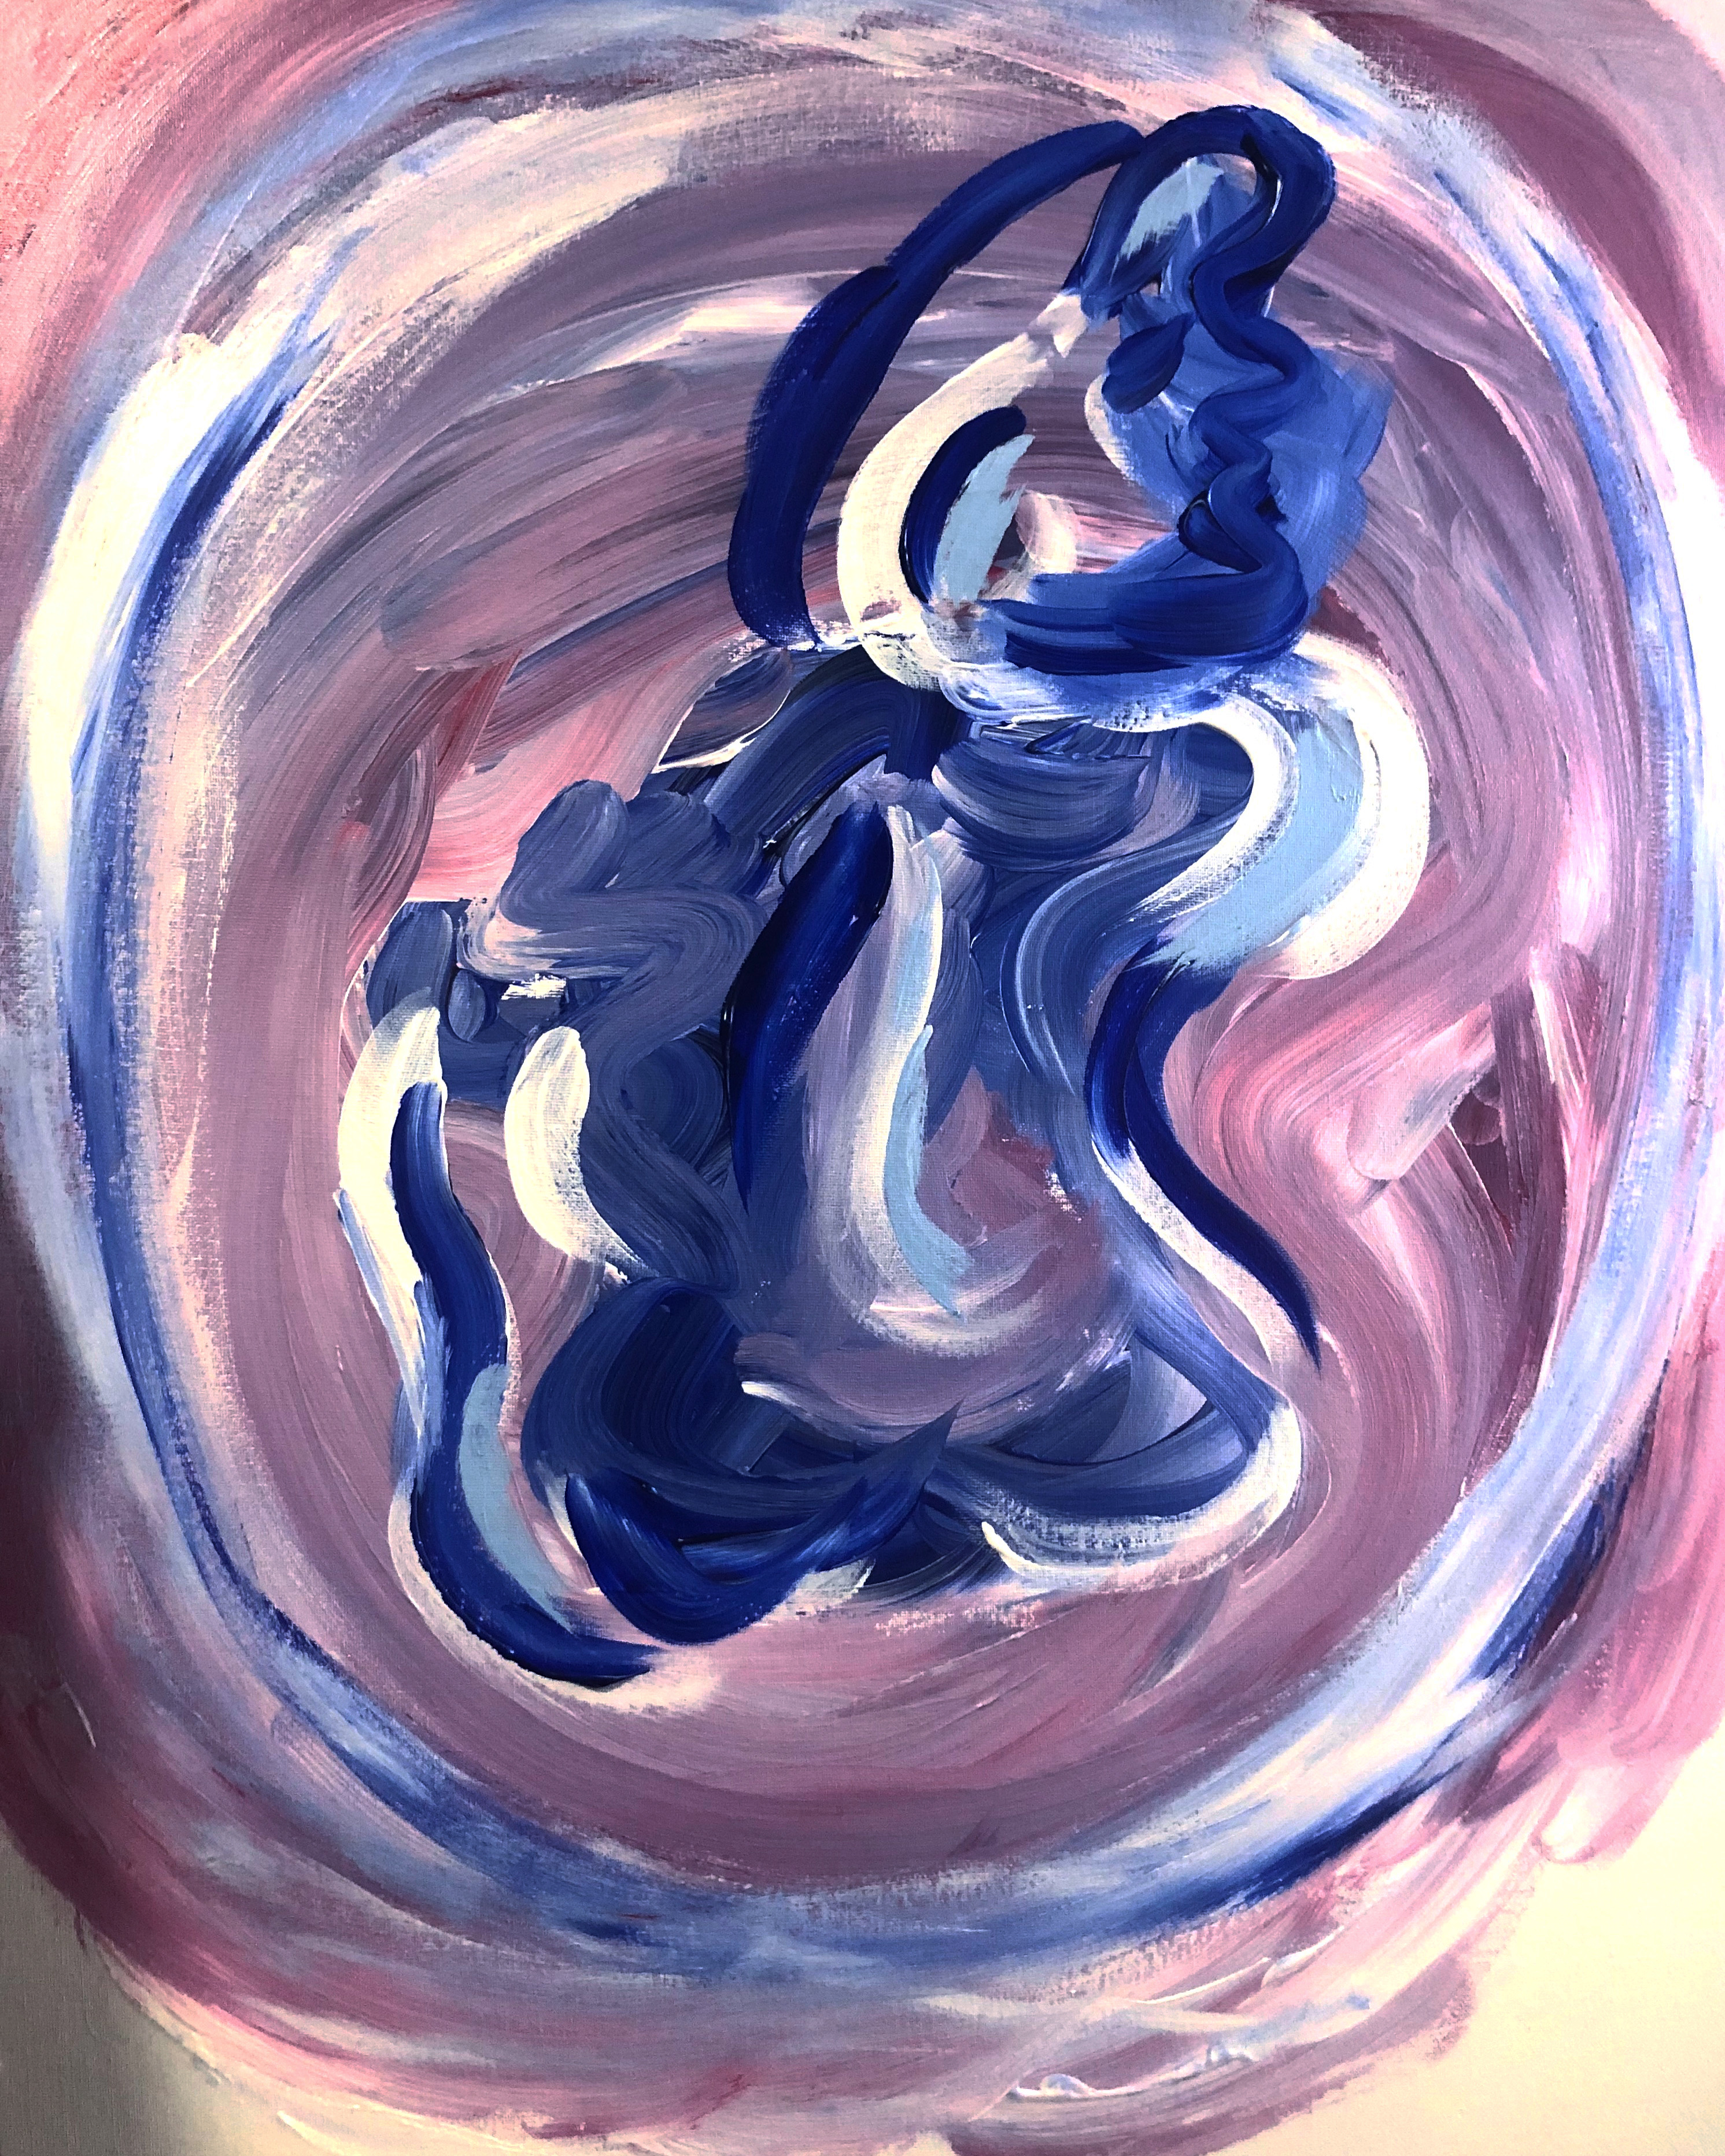 Woman in Blue artwork by Jazzy M - art listed for sale on Artplode